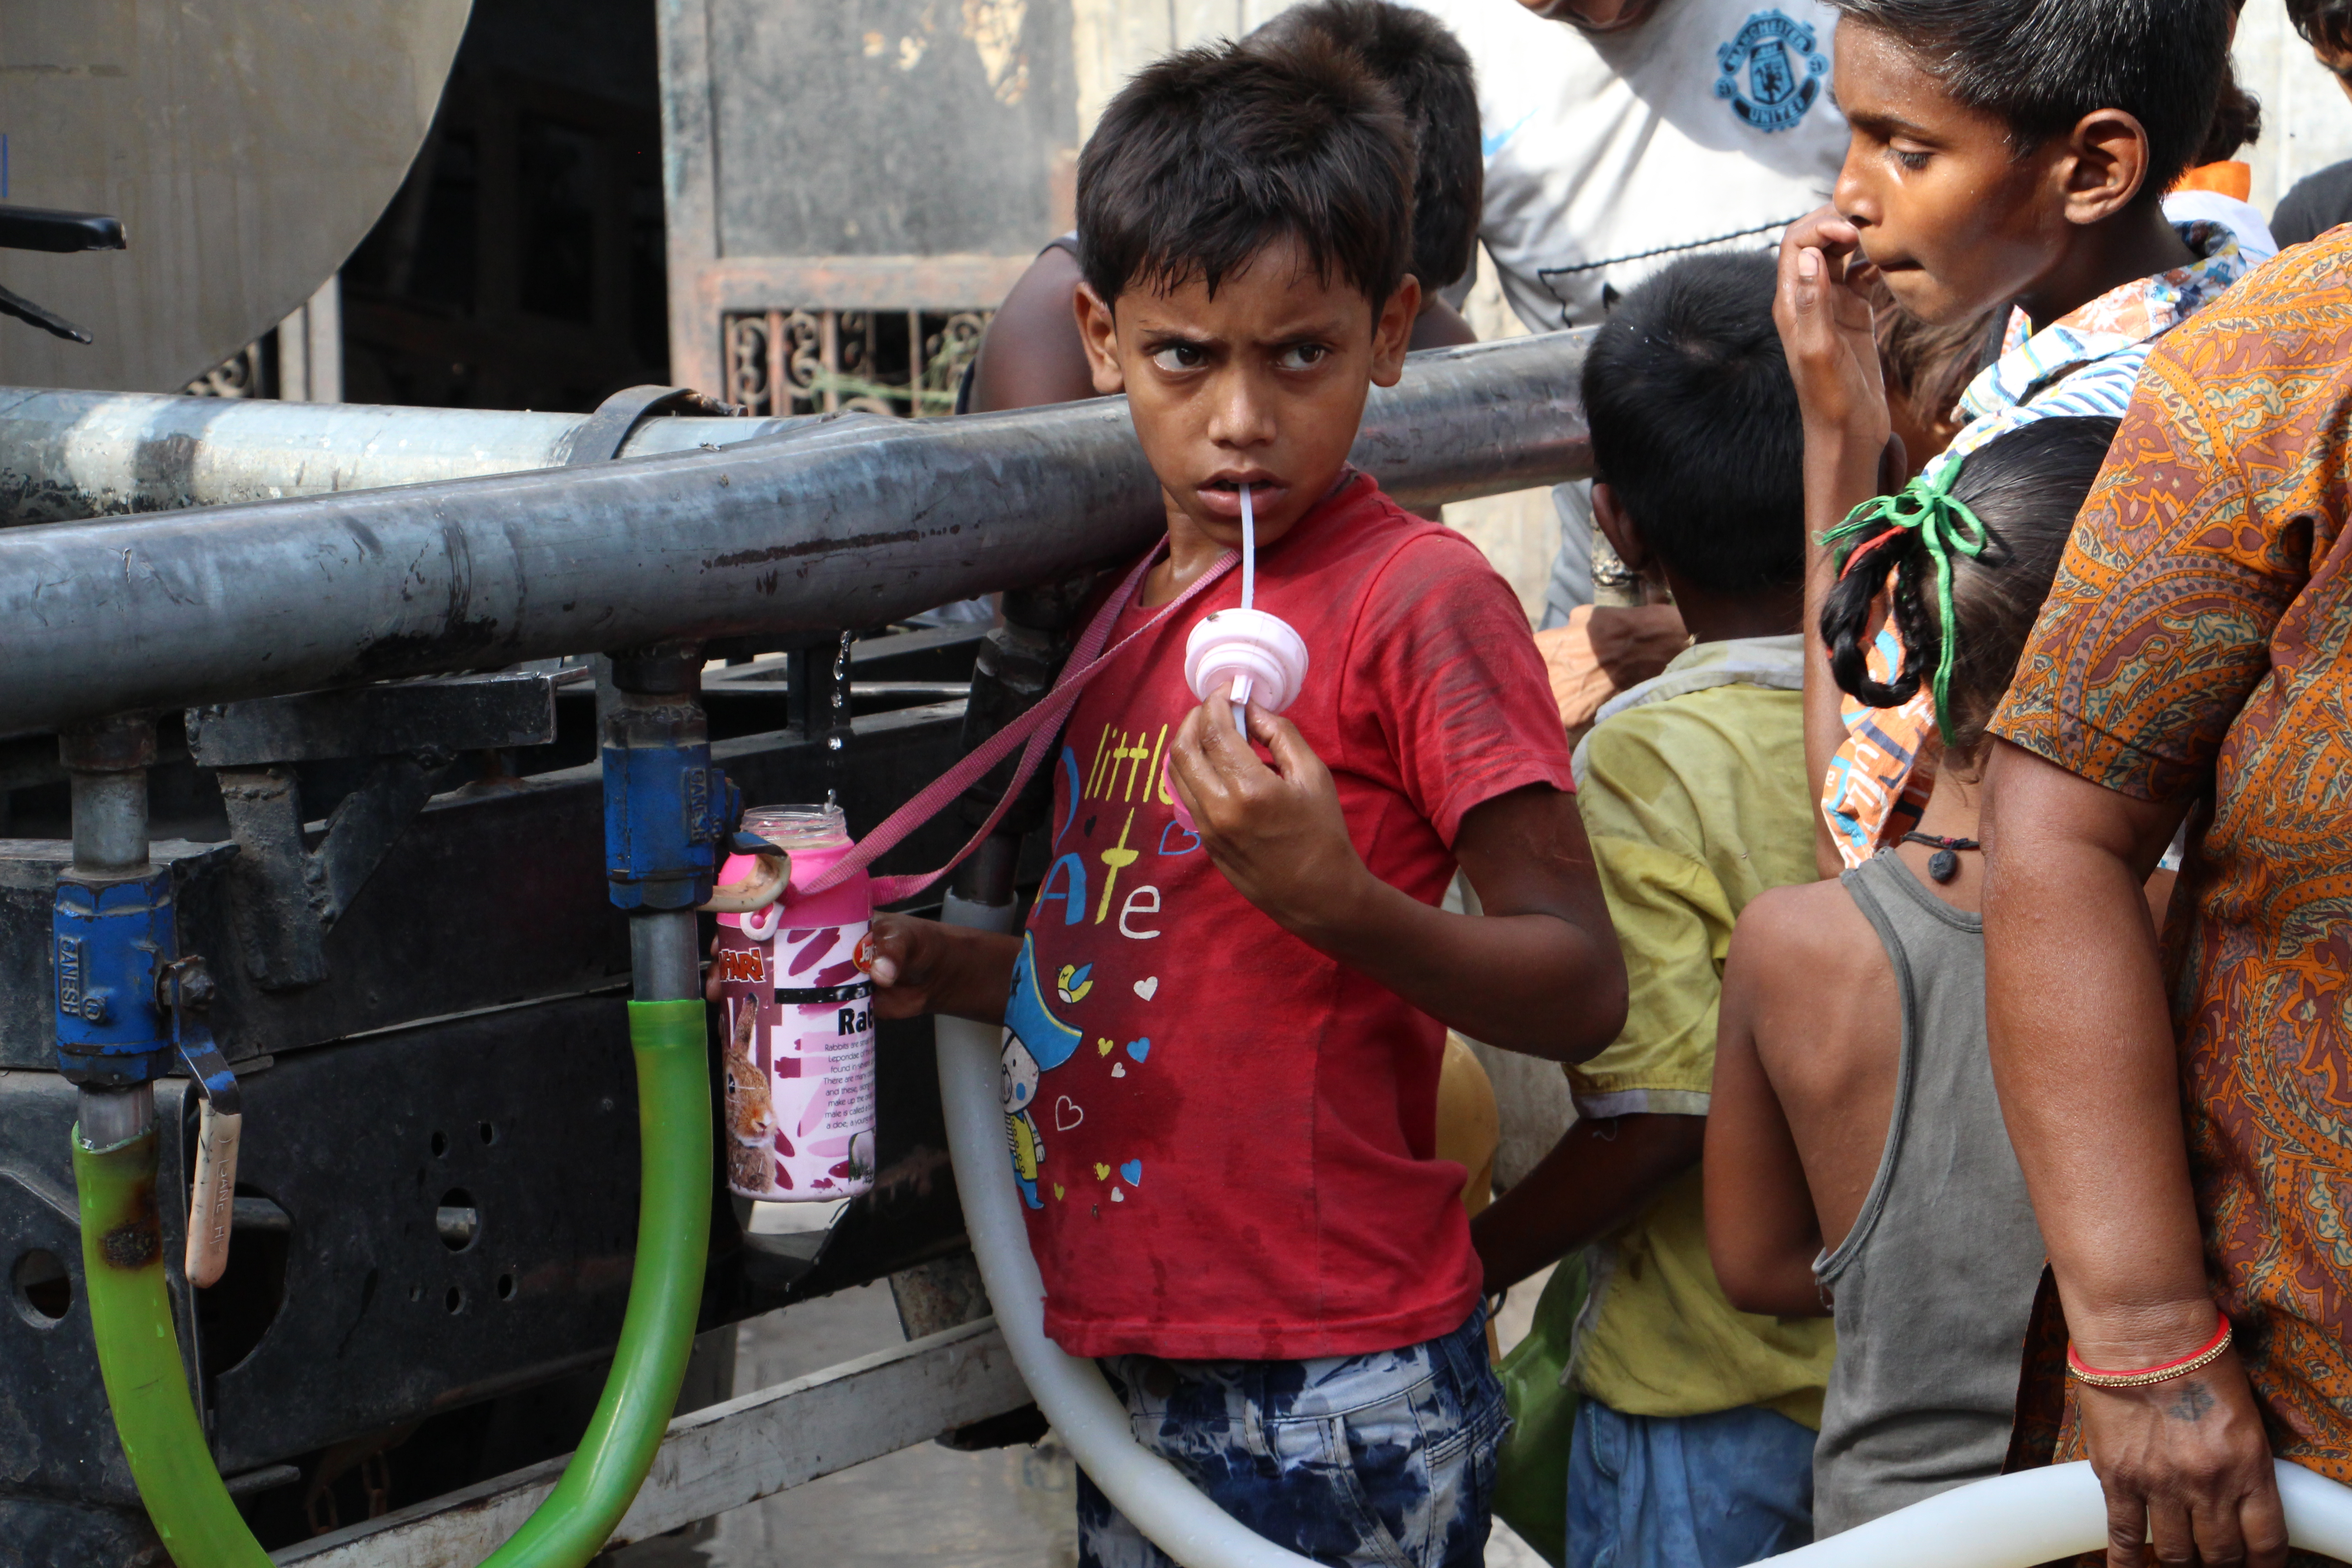 Children take water from a tanker in Wazirpur. Photo credit: Aabid Shafi